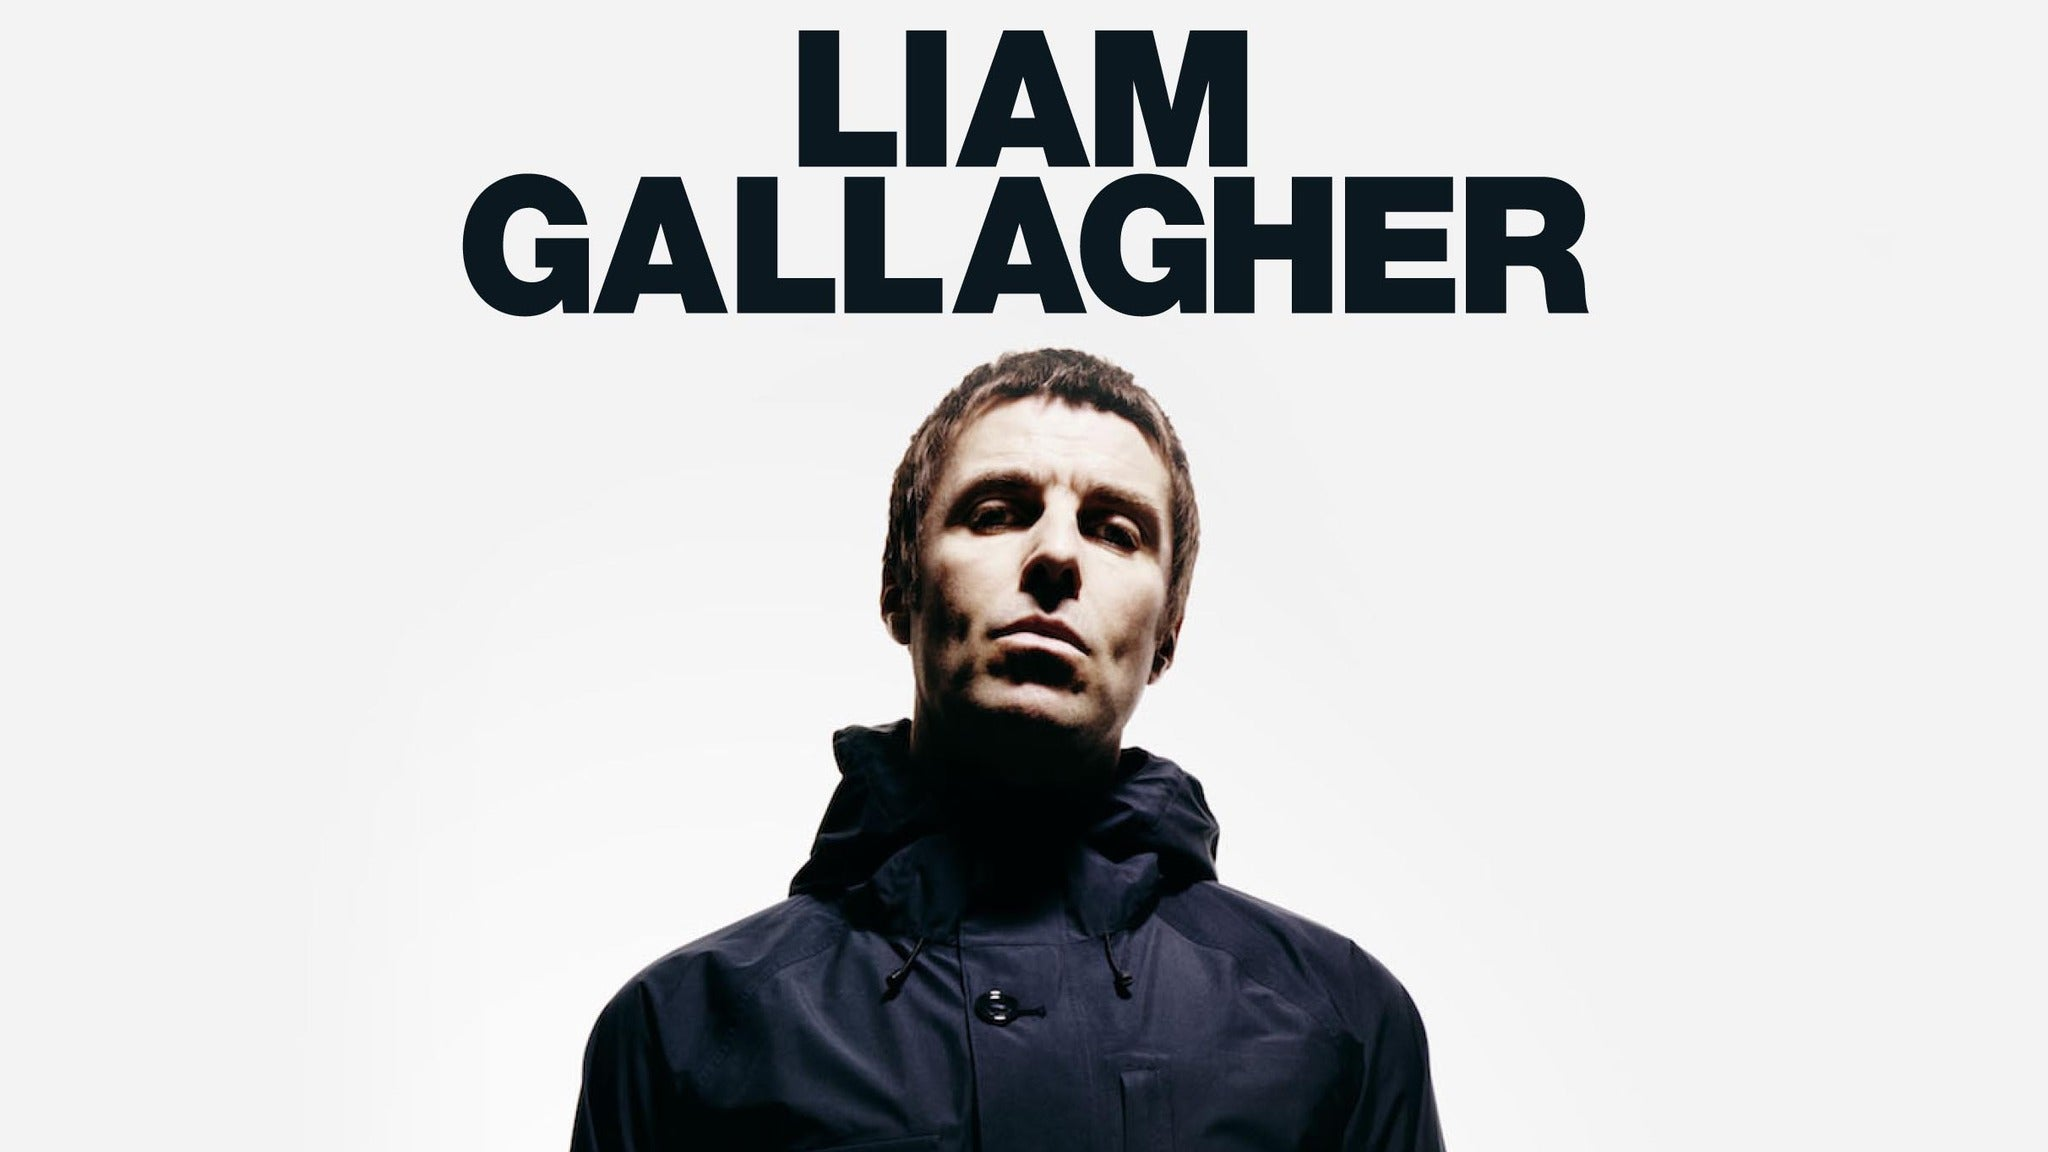 Liam Gallagher and Richard Ashcroft at The Masonic